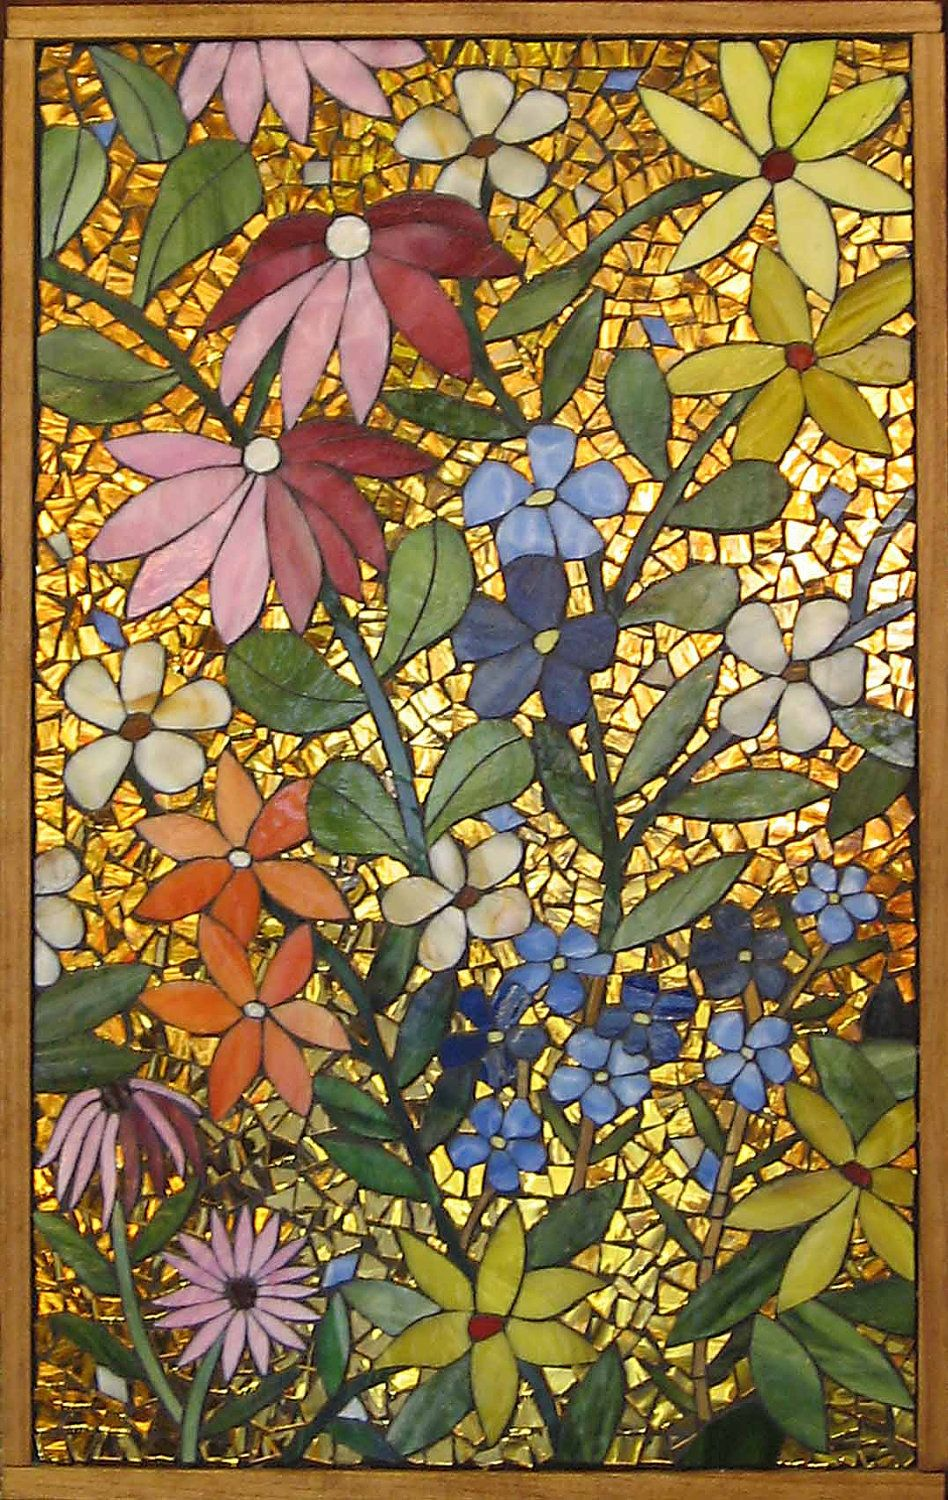 17 x 21 Flower Power Stained Glass Mosaic. $450.00, via Etsy.